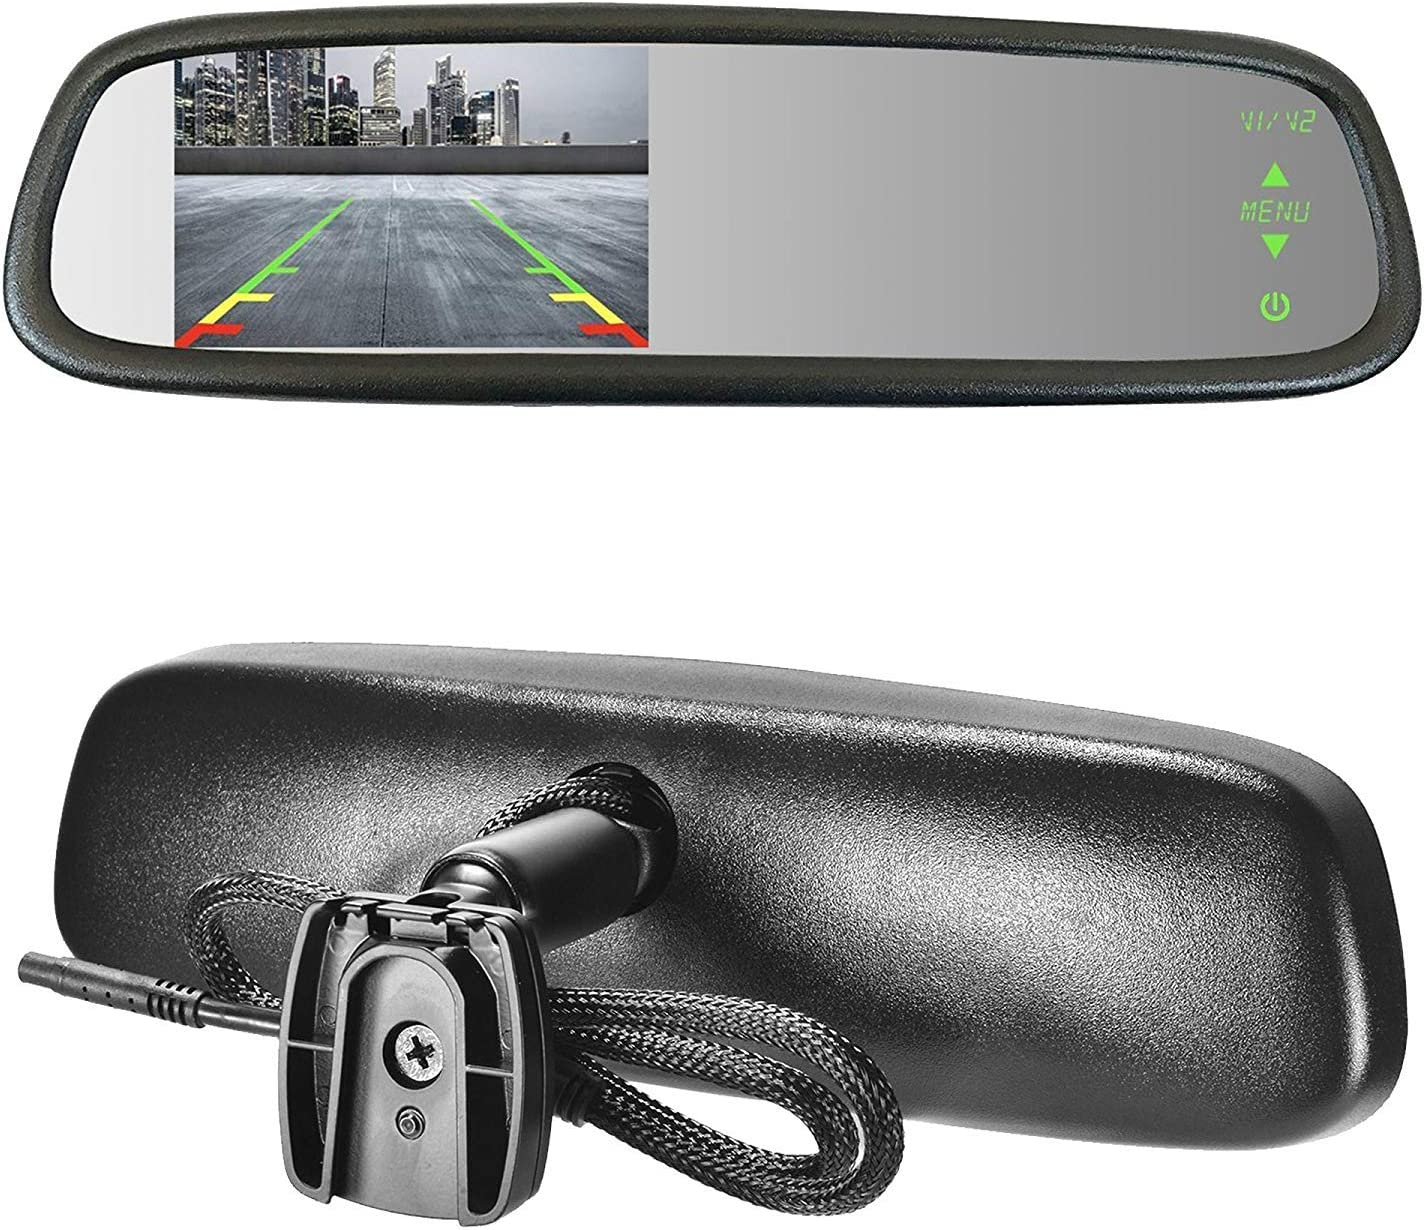 Master Tailgaters Sleek Rear View Mirror with Ultra Bright 4.3